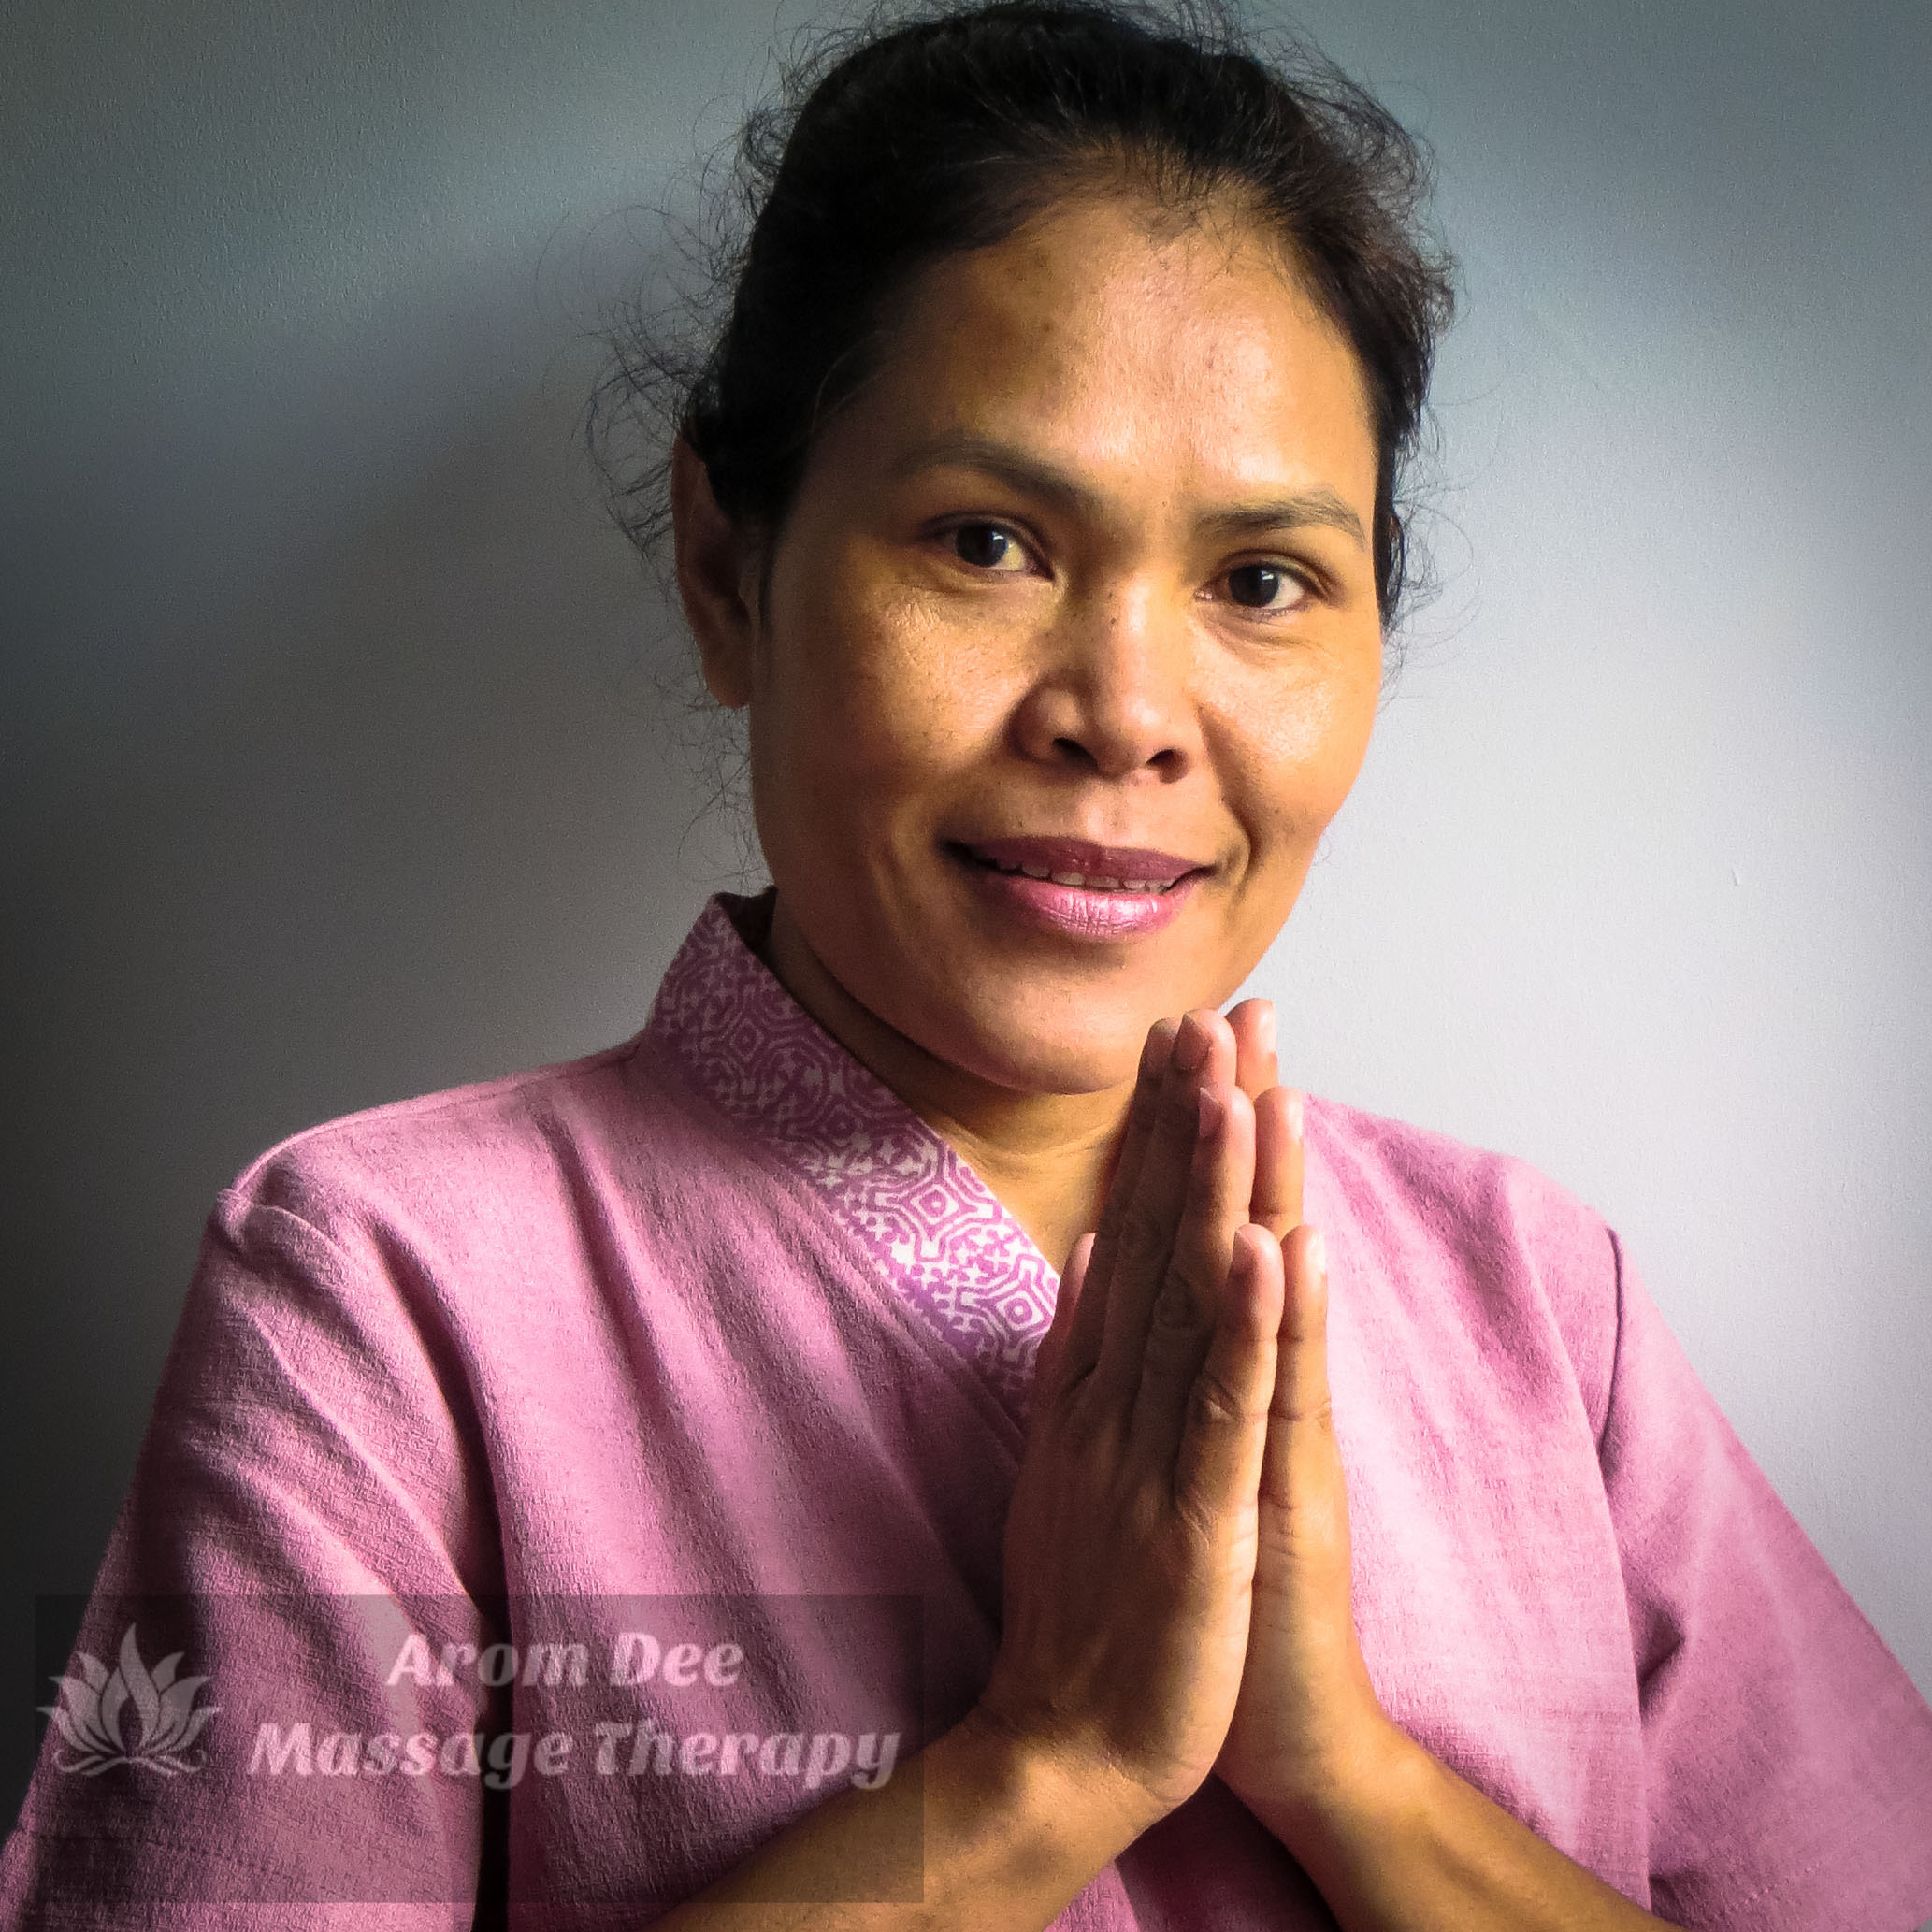 Traditional Thai therapist wearing pink tunic with both hands clasped together in front as if in prayer